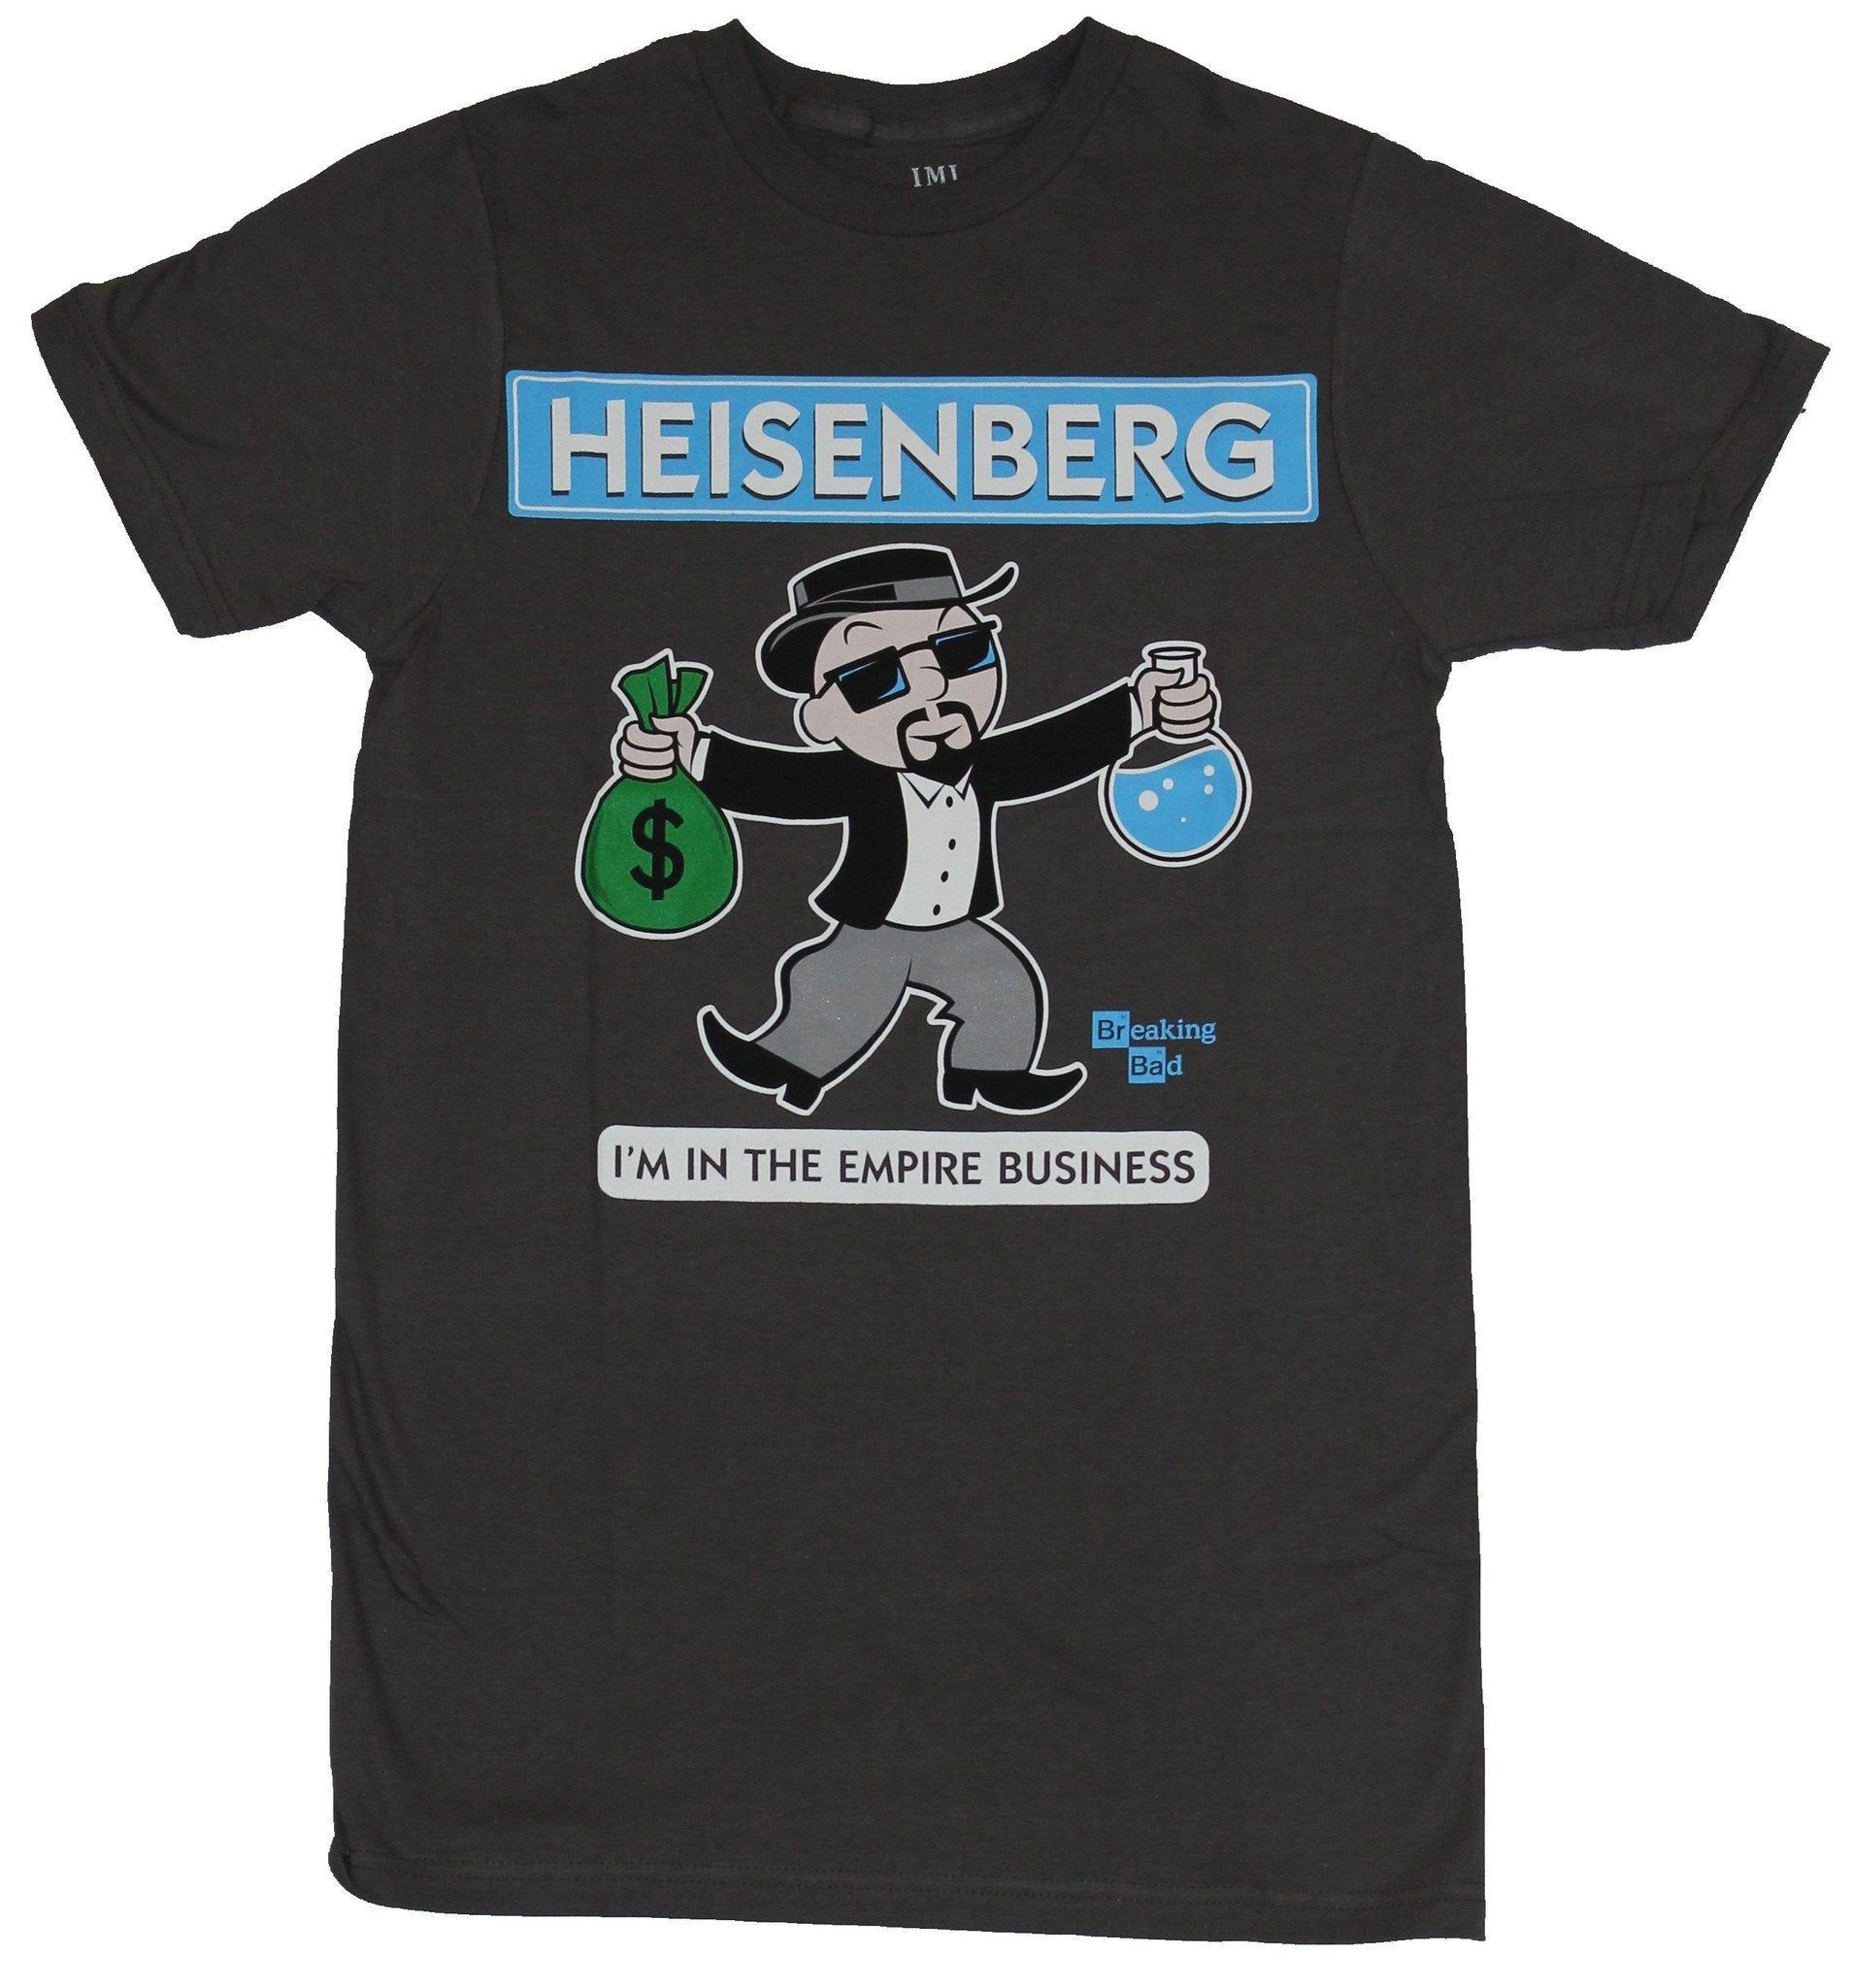 Breaking Bad Mens T-Shirt - Heisenberg I'm In The Empire Business Cartoon Image